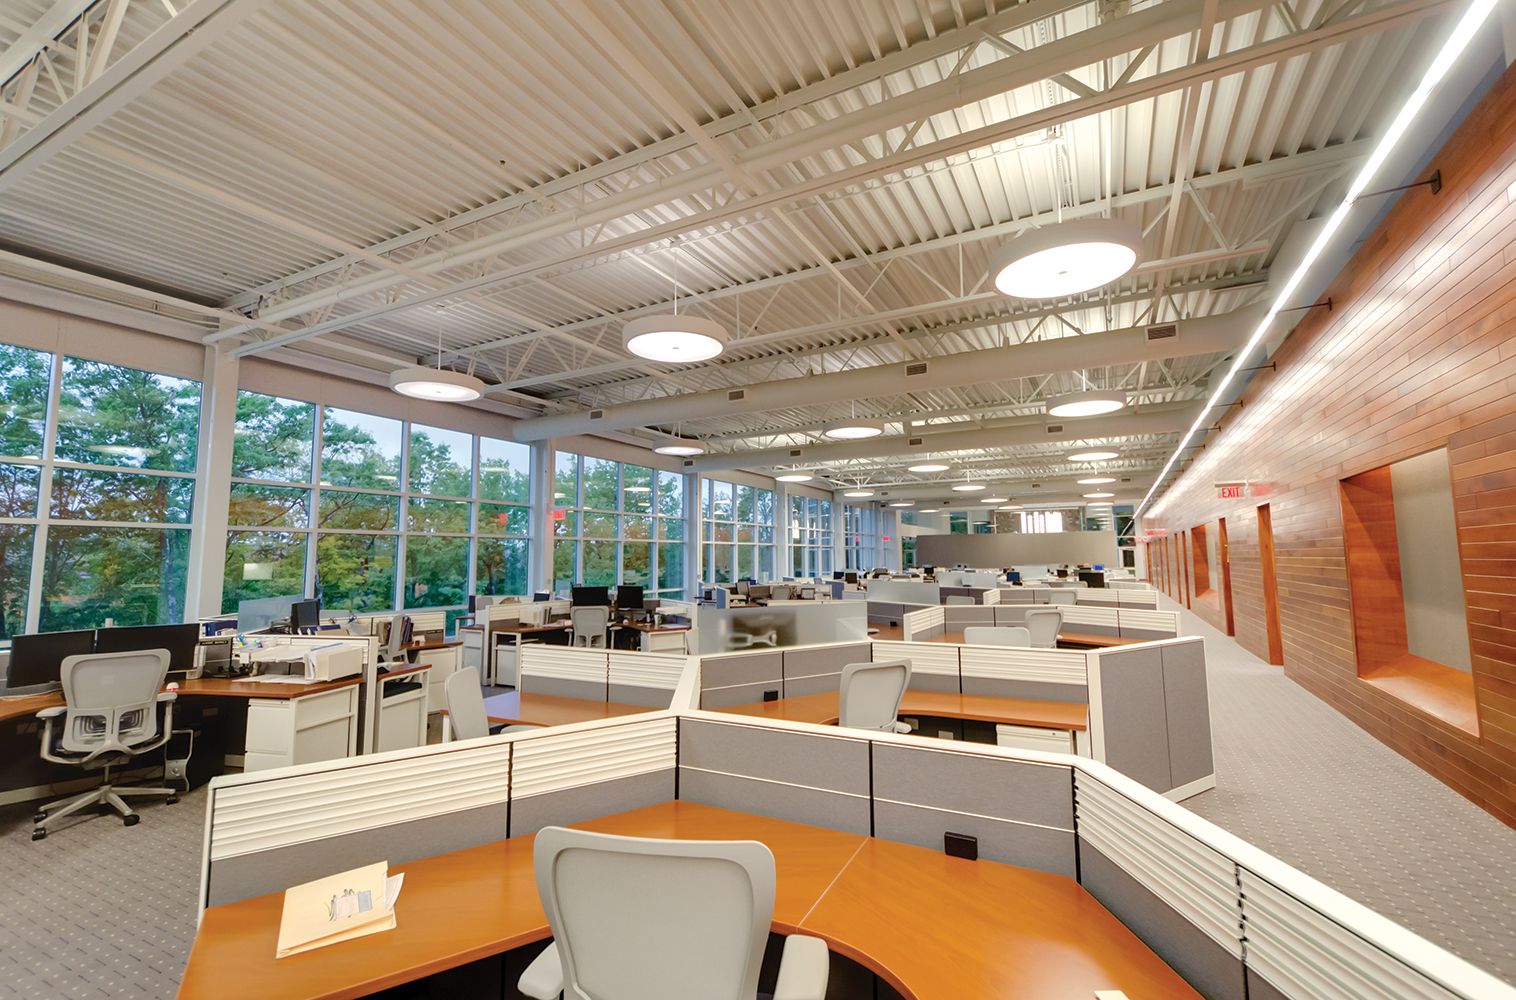 Advantus linear indirect wall mounted fixtures and Omnience pendants in a large office lighting application.